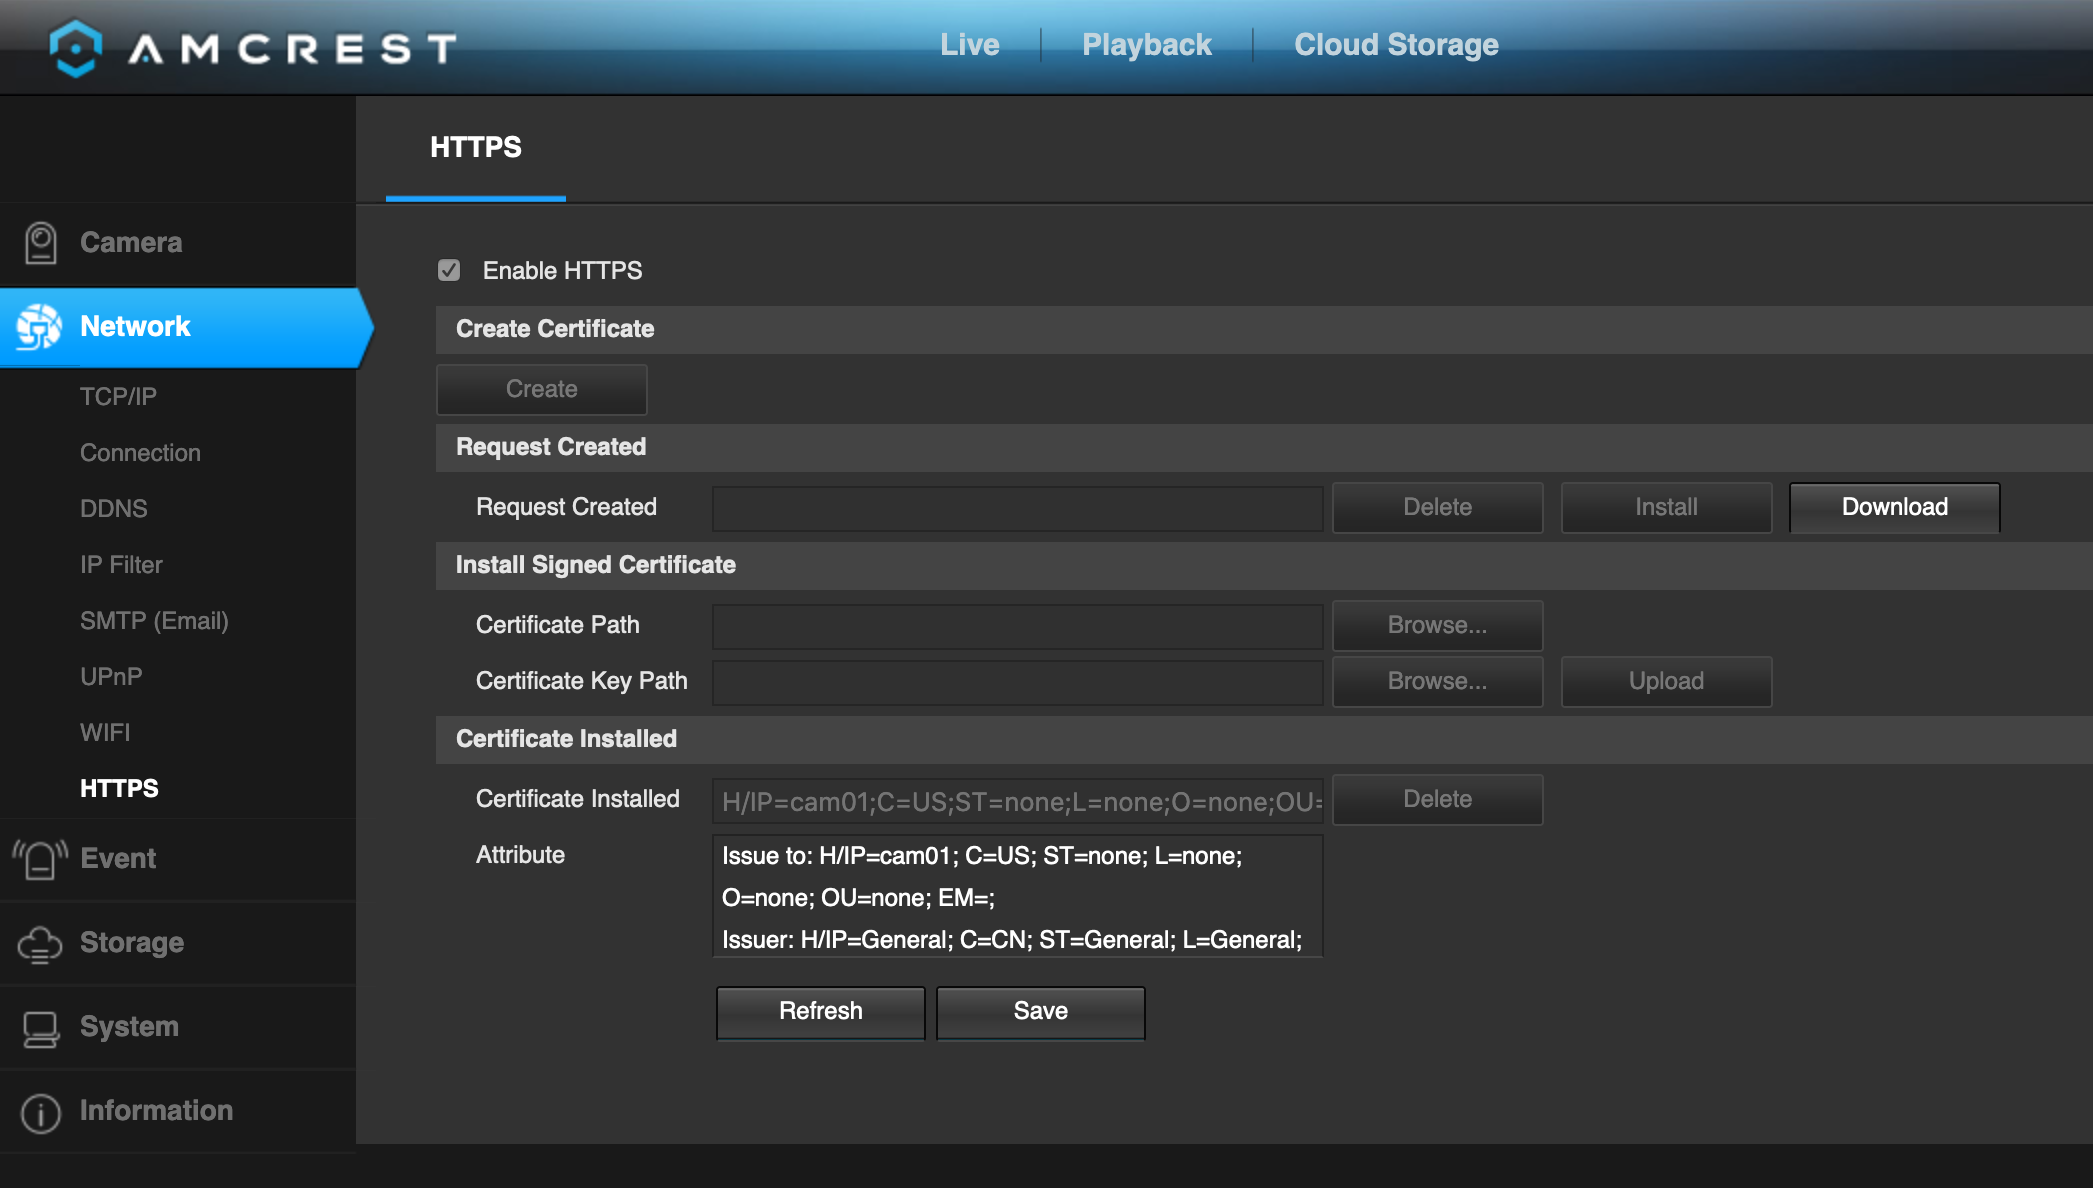 Screenshot showing the HTTPS / certificate configuration on the camera management interface